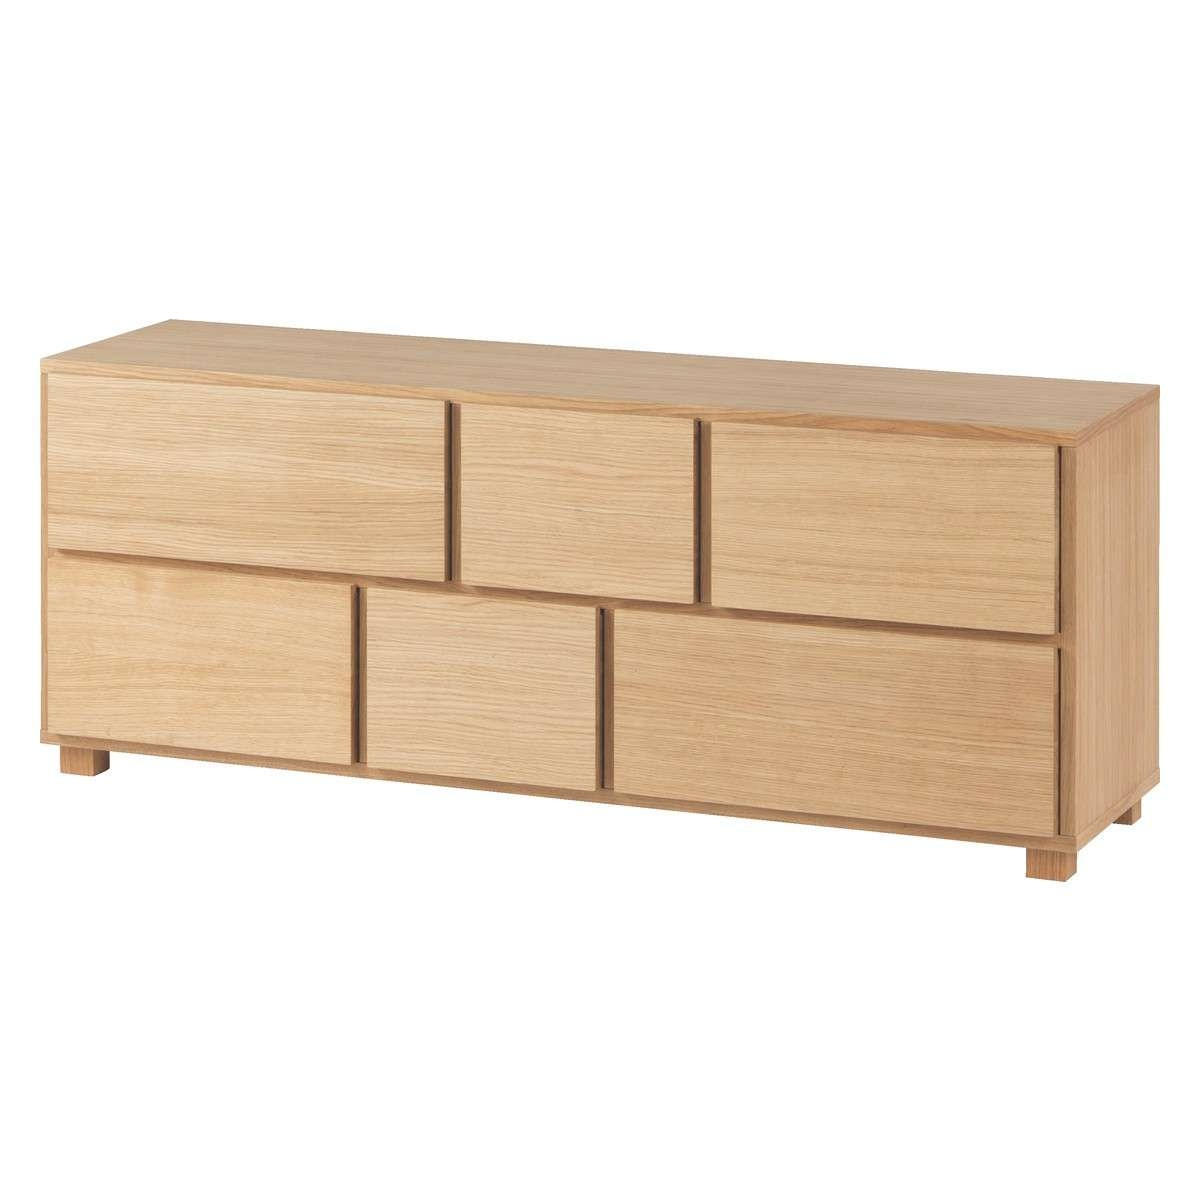 Hana Ii Oiled Oak 6 Drawer Low Wide Chest | Buy Now At Habitat Uk Inside Low Wooden Sideboards (View 3 of 20)